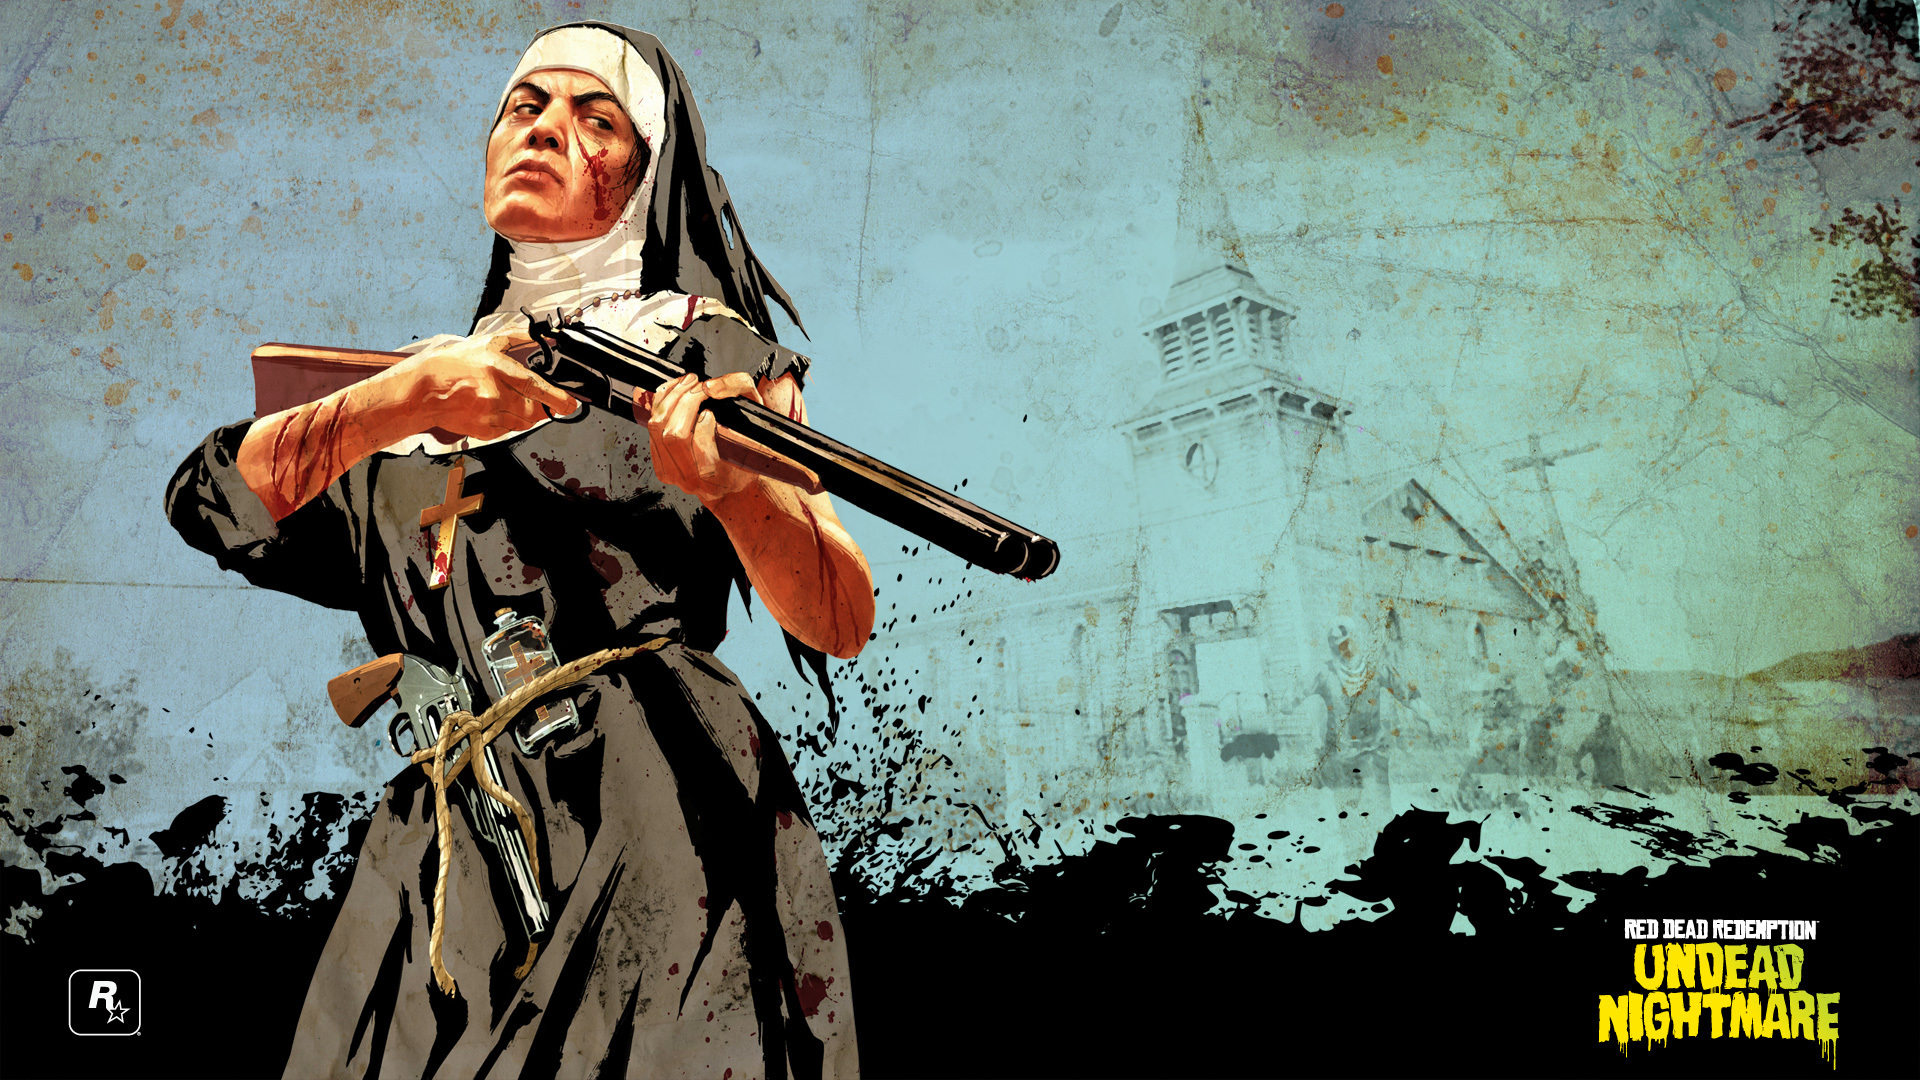 red dead redemption undead nightmare images undead wallpaper hd